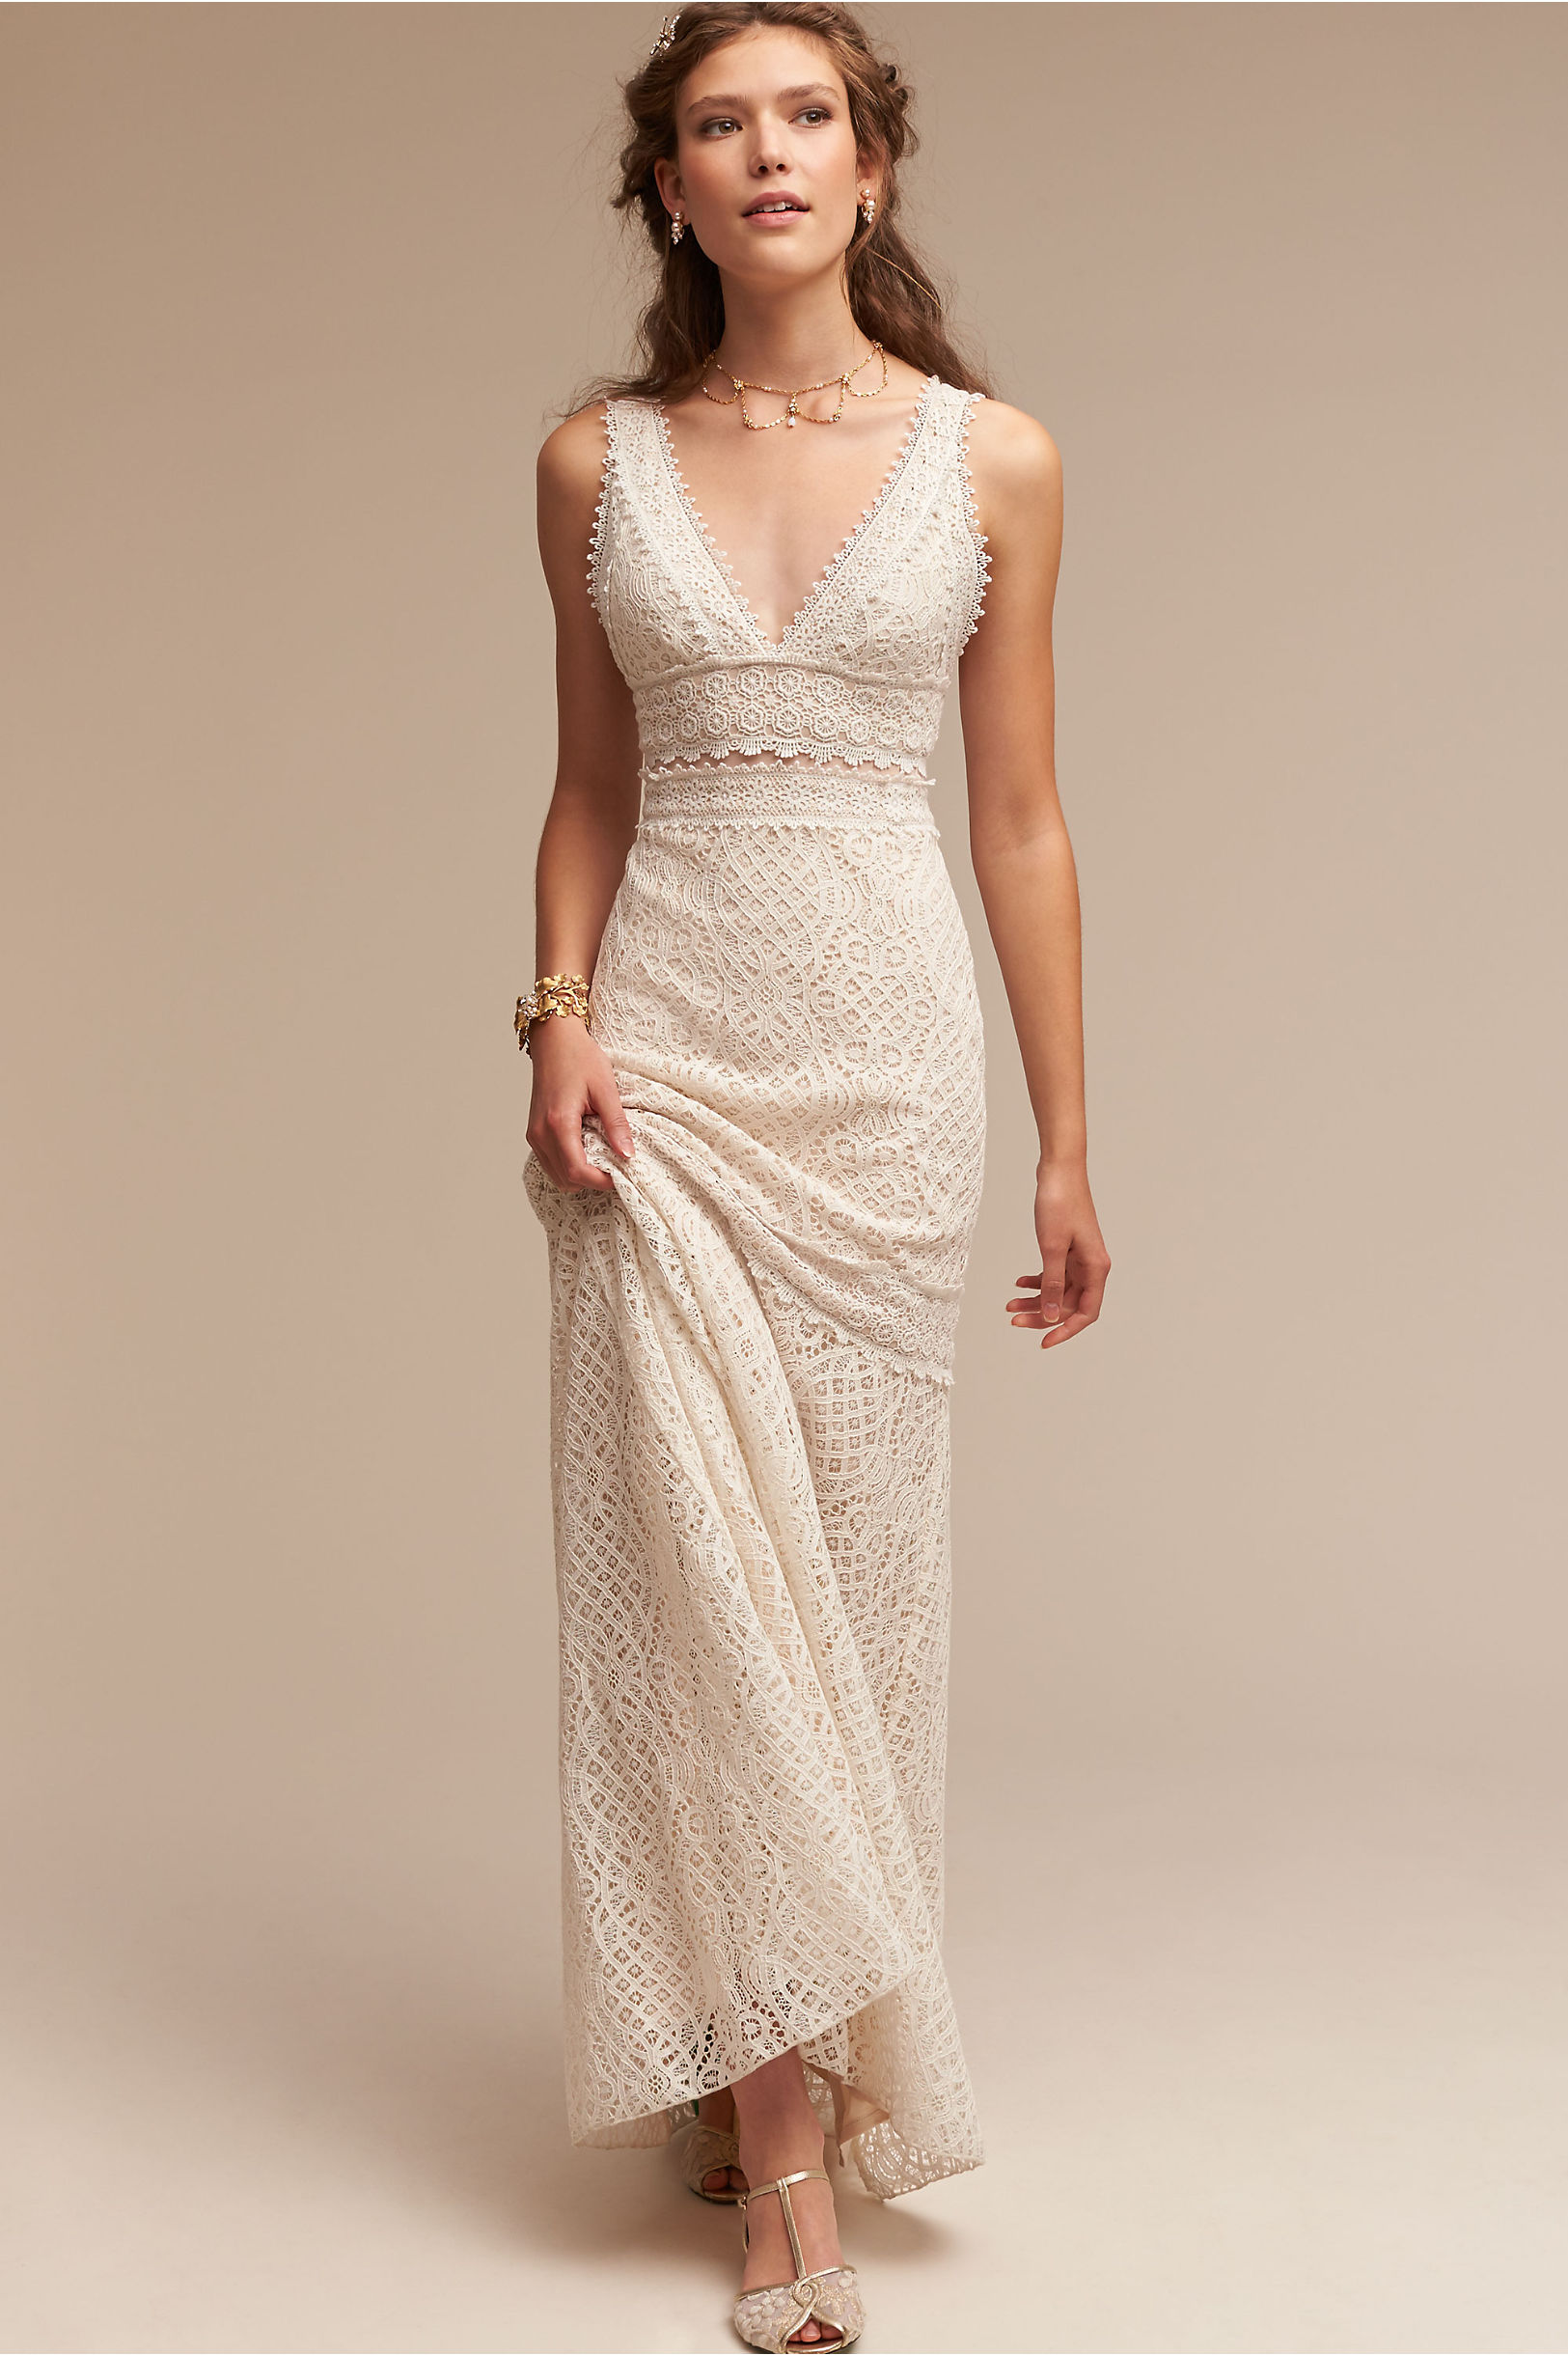 Kiely Gown in Sale | BHLDN